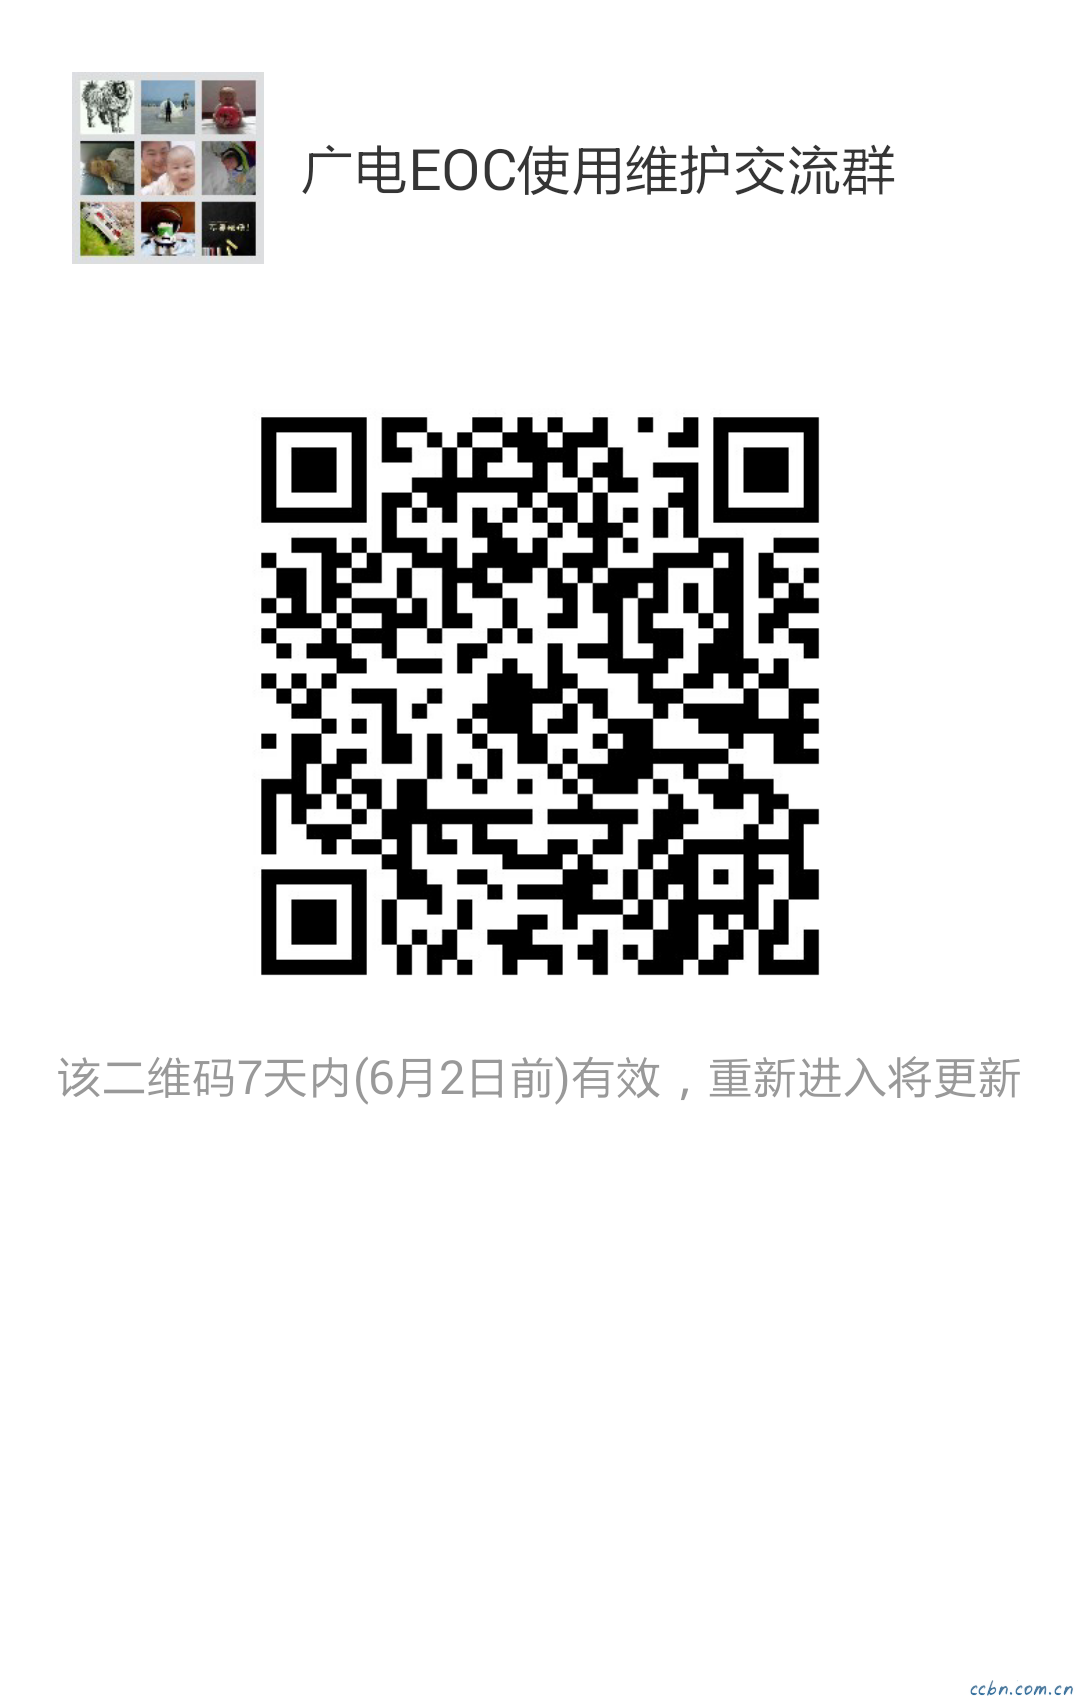 mmqrcode1464225096360.png